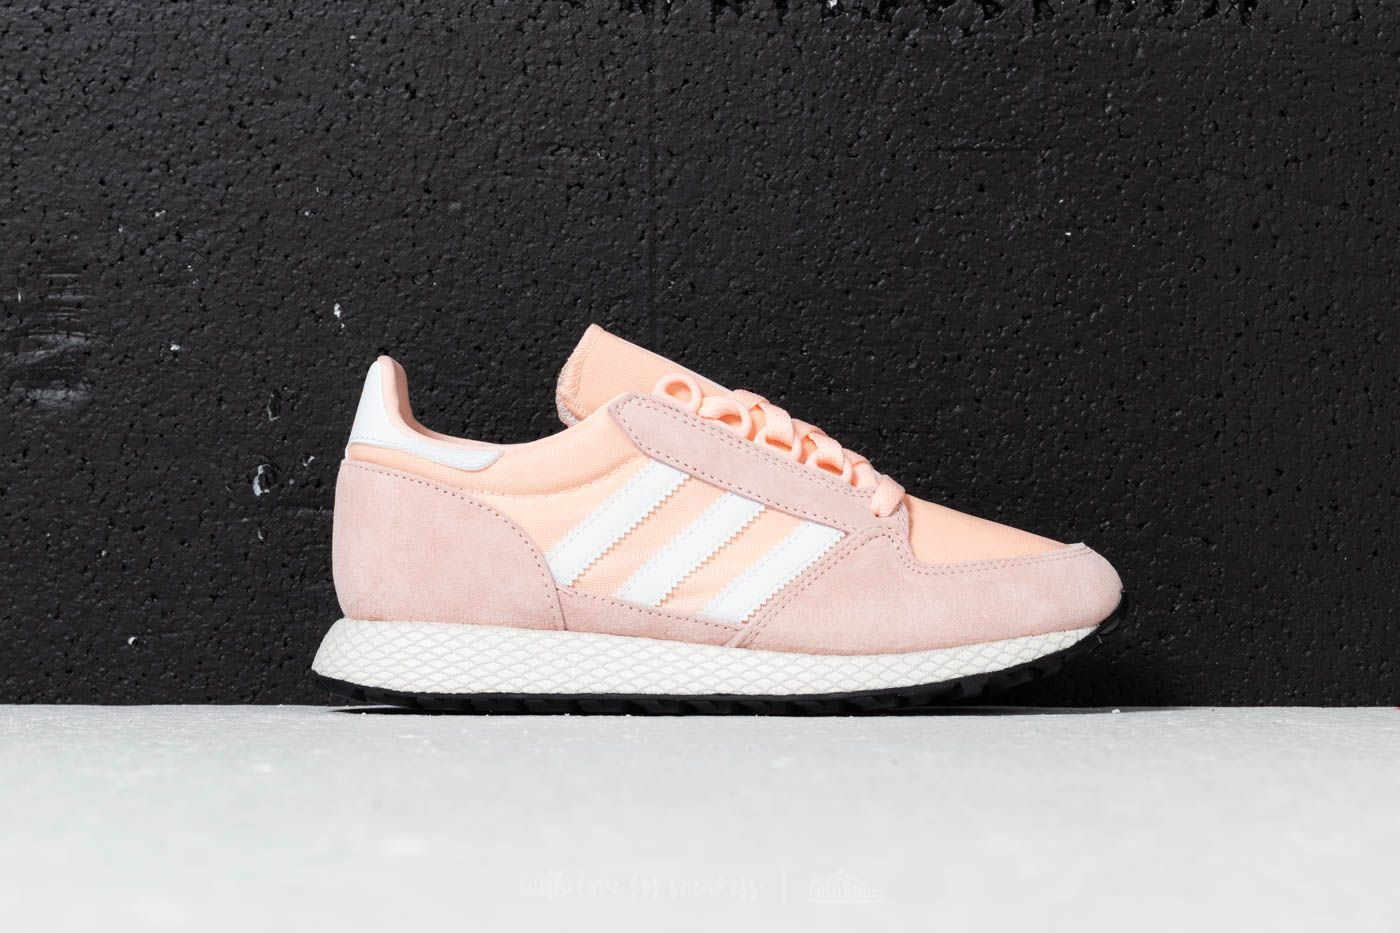 Abrazadera alivio Cereal  adidas Forest Grove Woman | Clear Orange/ Cloud White/ Core | $99 | #pink  #sneakers #retro